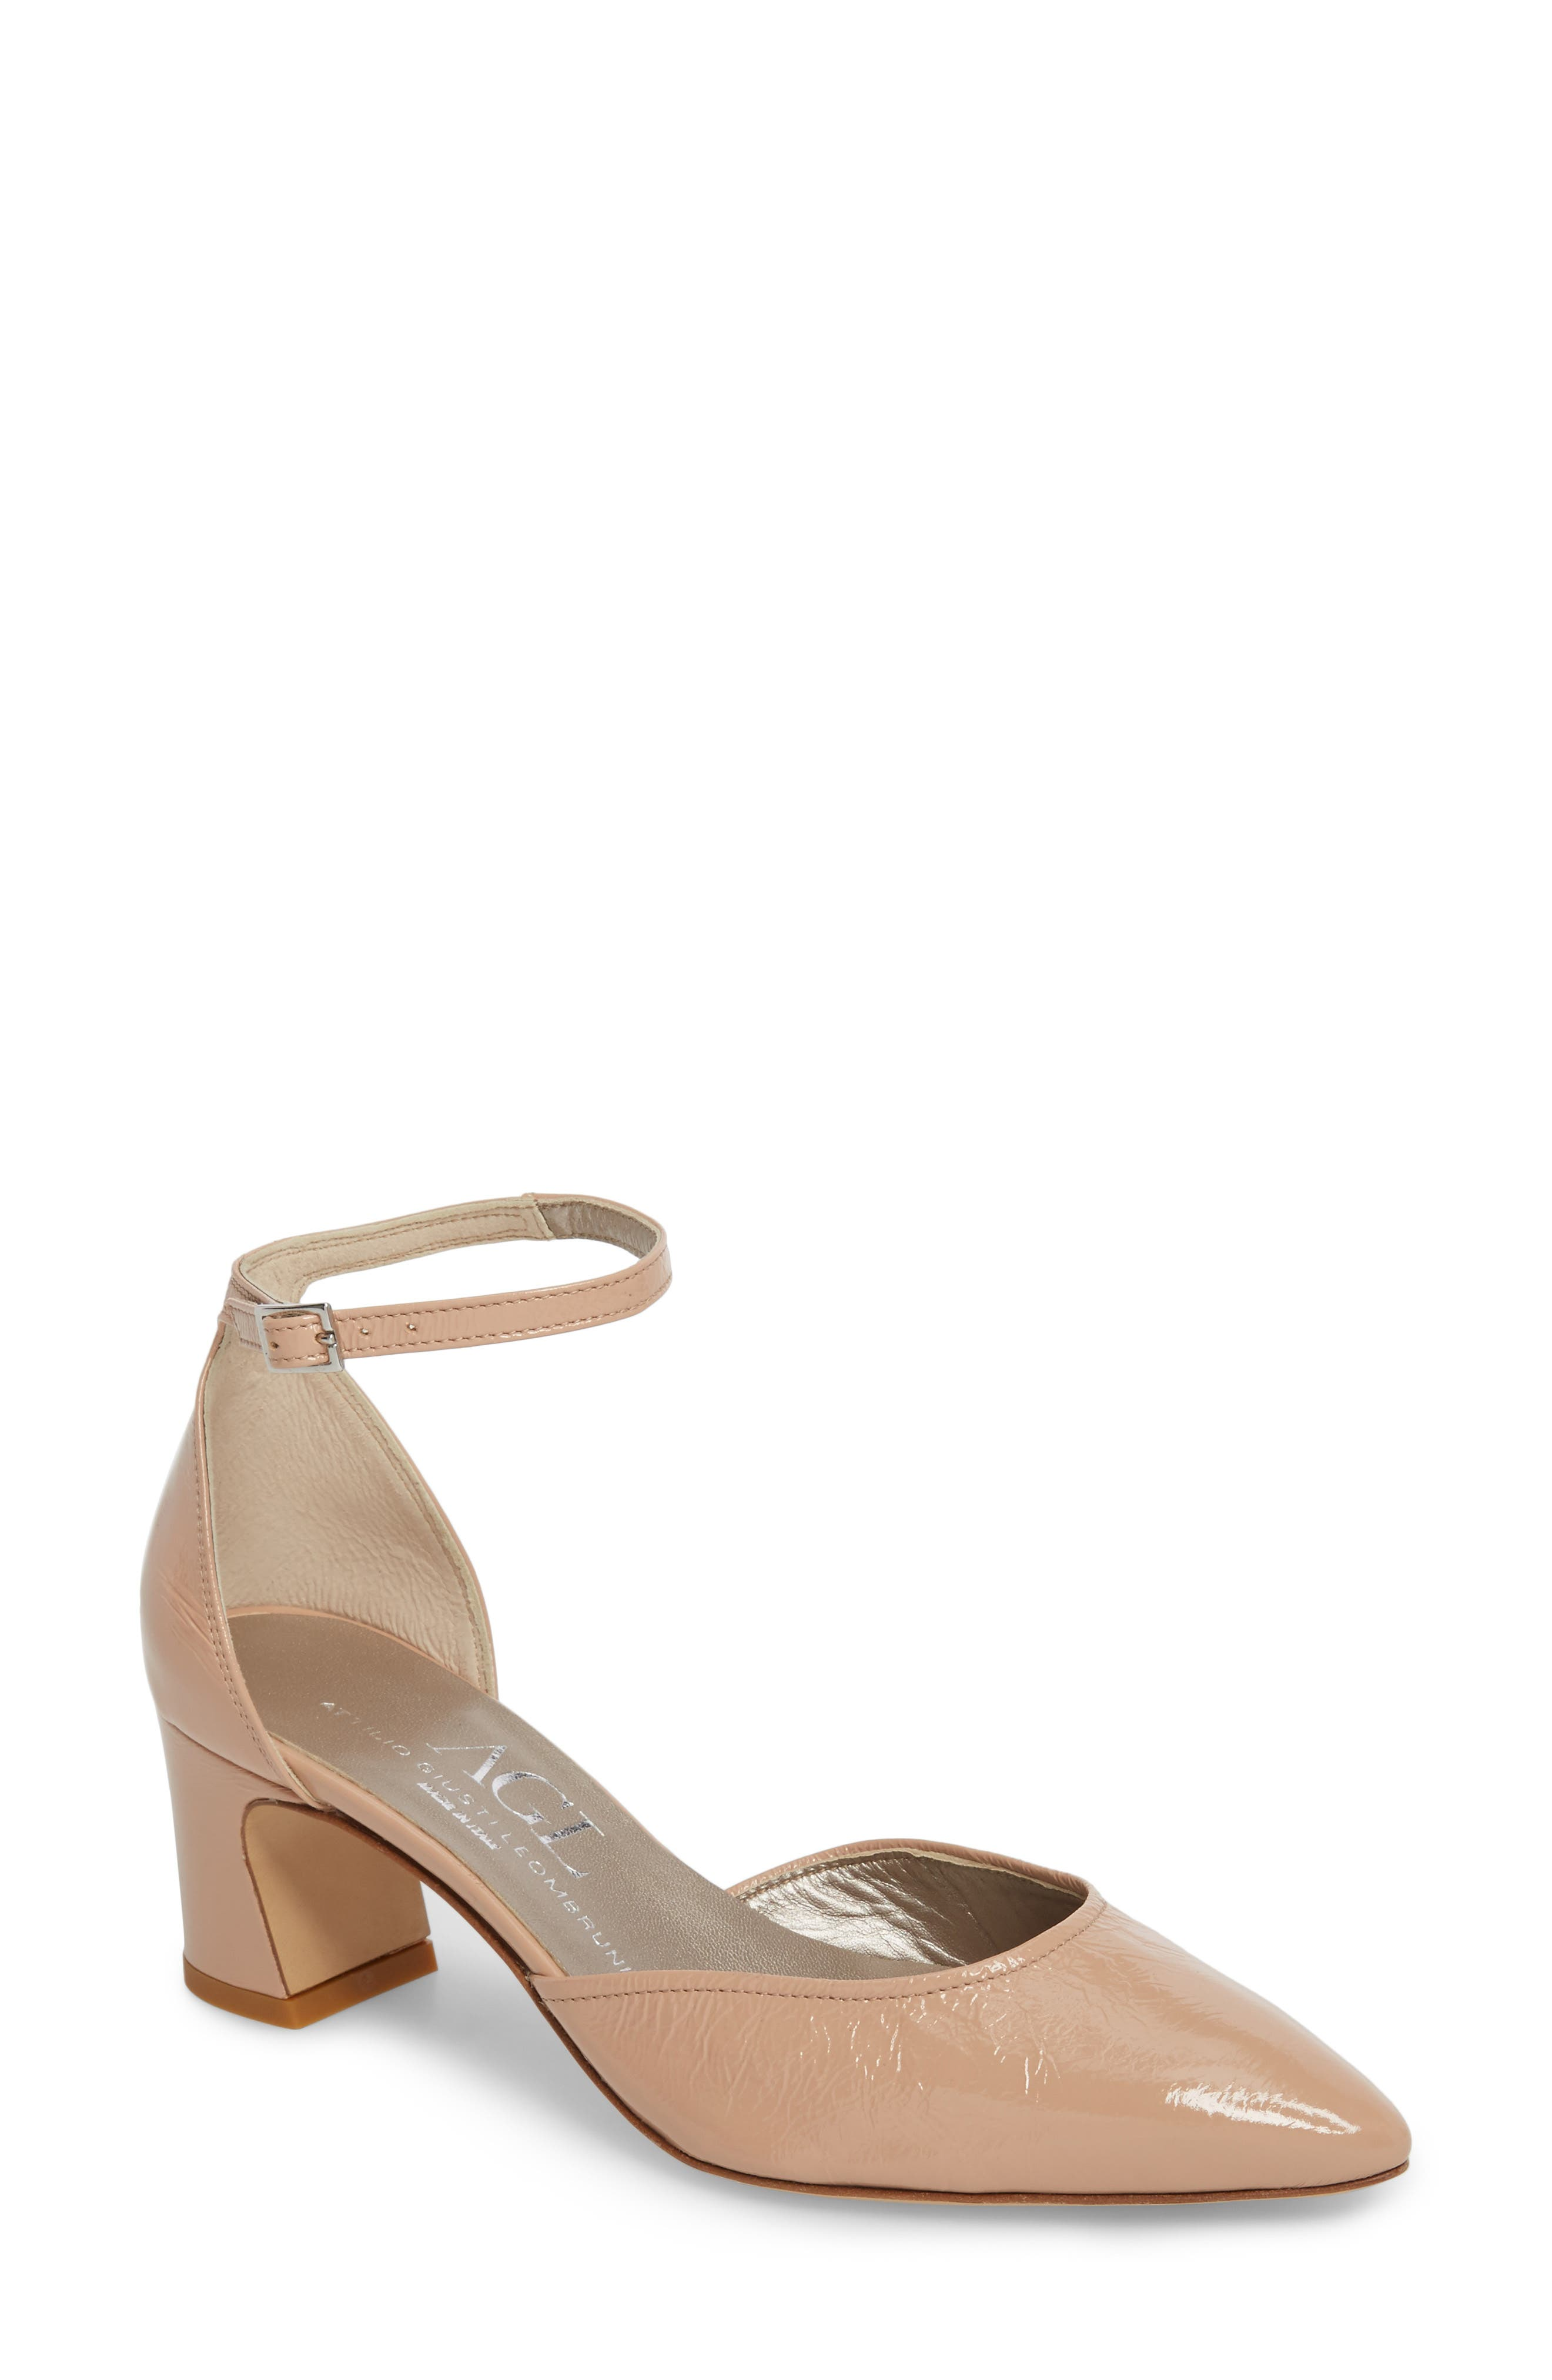 d'Orsay Ankle Strap Pump,                             Main thumbnail 1, color,                             Nude Glammy Leather